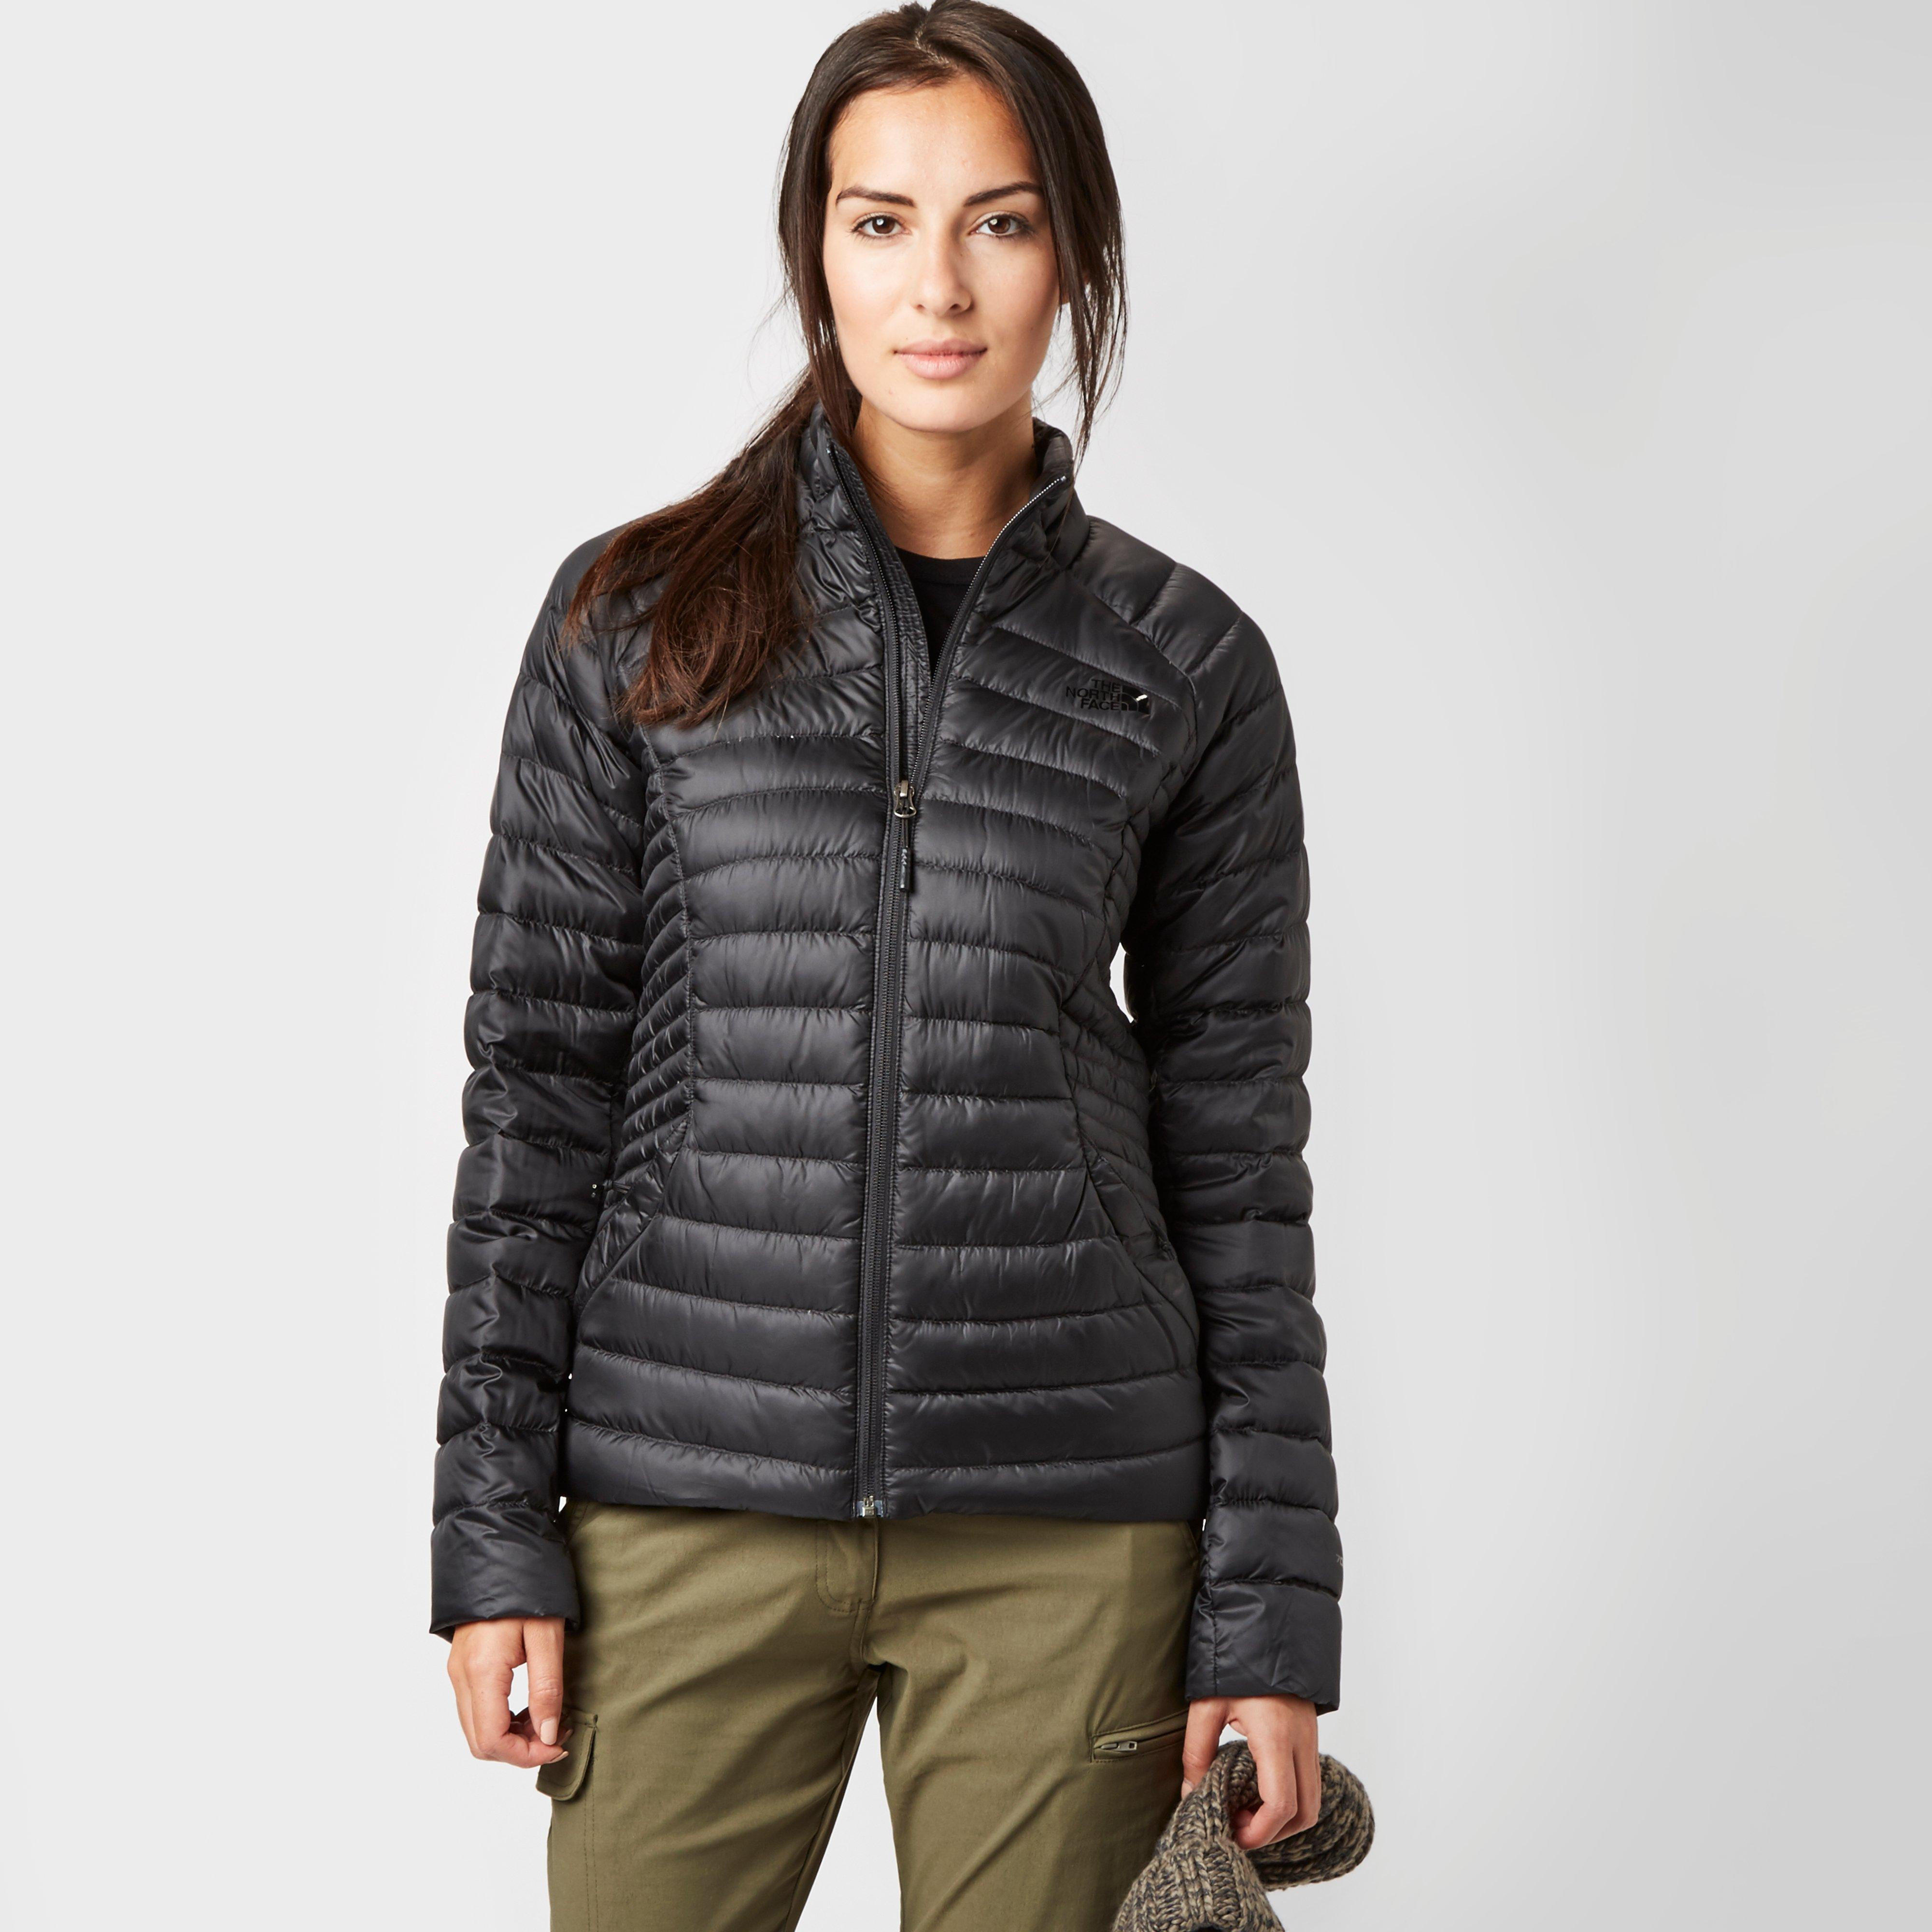 Women's Down Jackets & Insulated Jackets | Millets